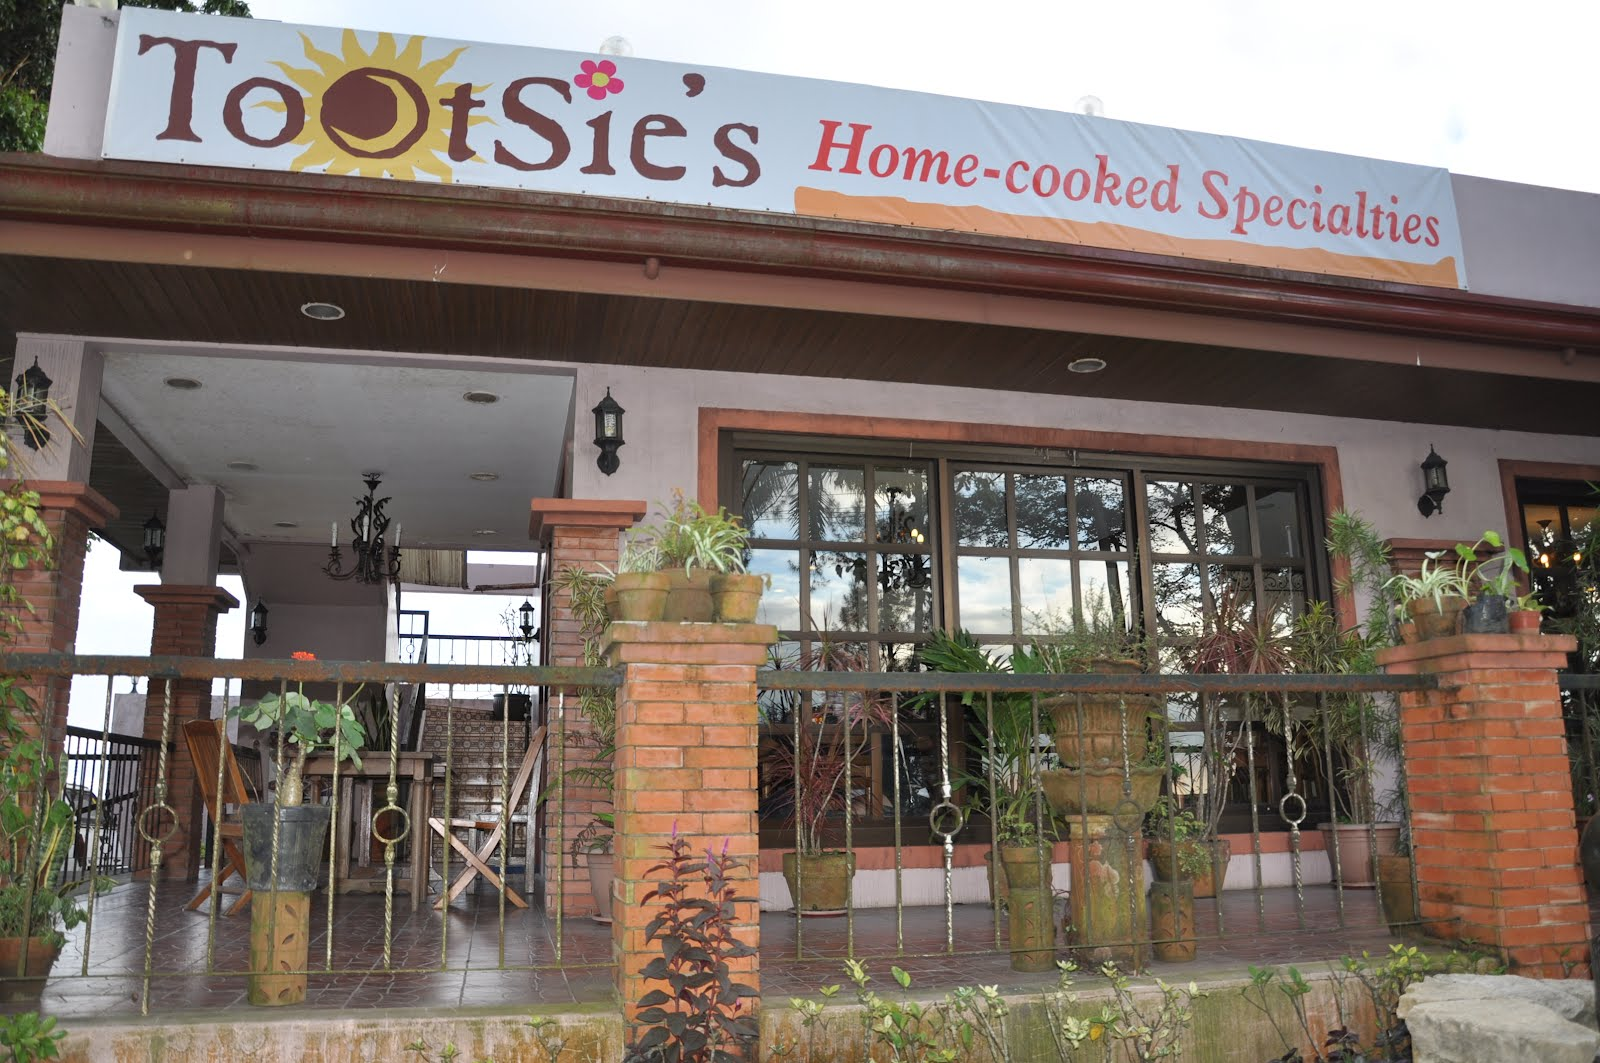 Family Time and More at Tootsies - Occasions of JOY